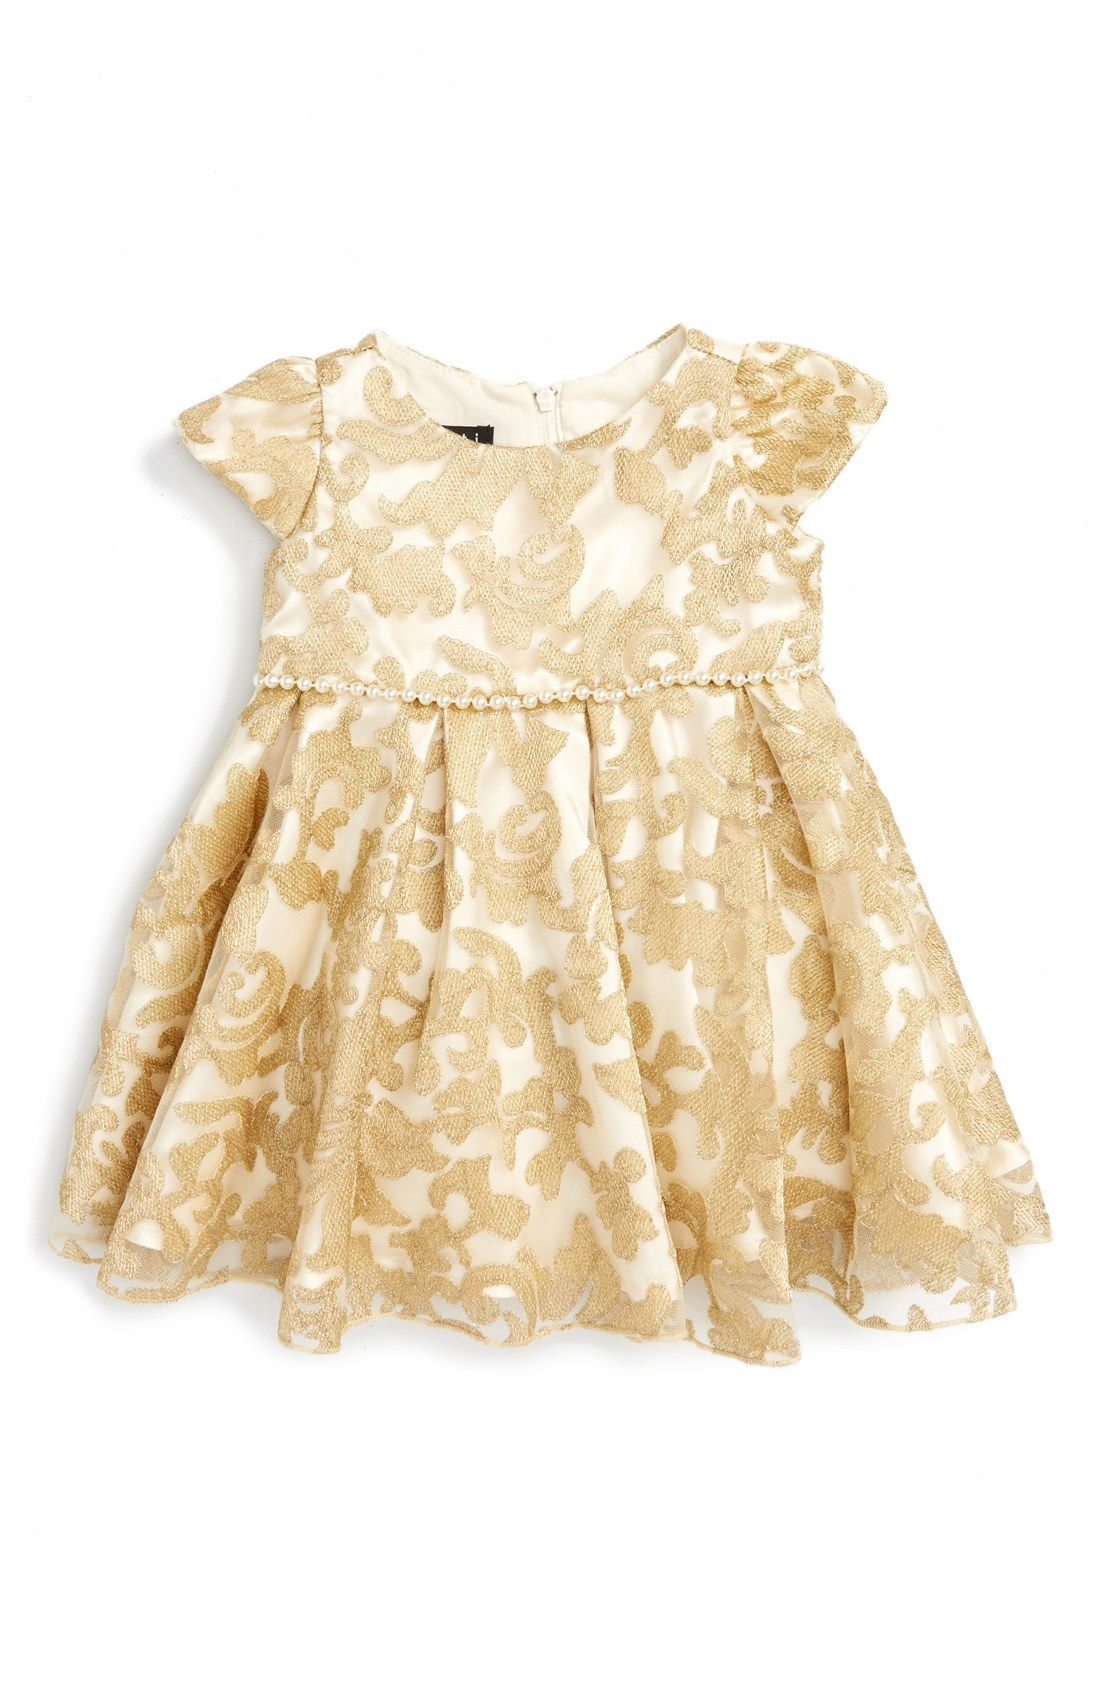 Young girls wedding dresses  Where to Find Cute Flower Girl Dresses  Young wedding Flower girl